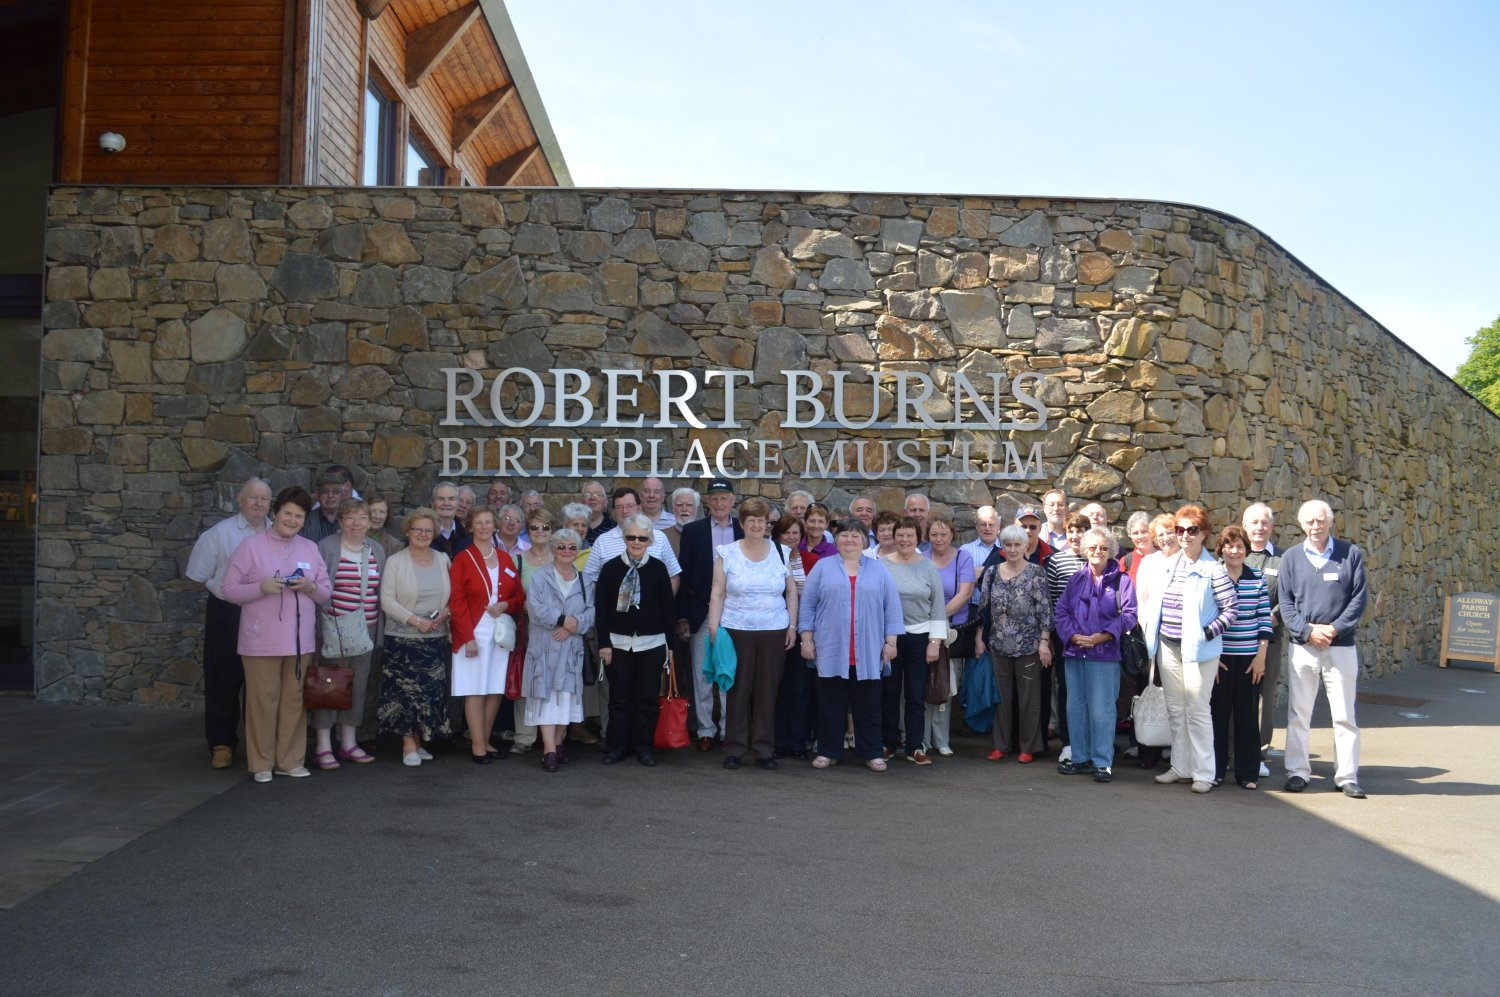 Group at Burns Birthplace Museum